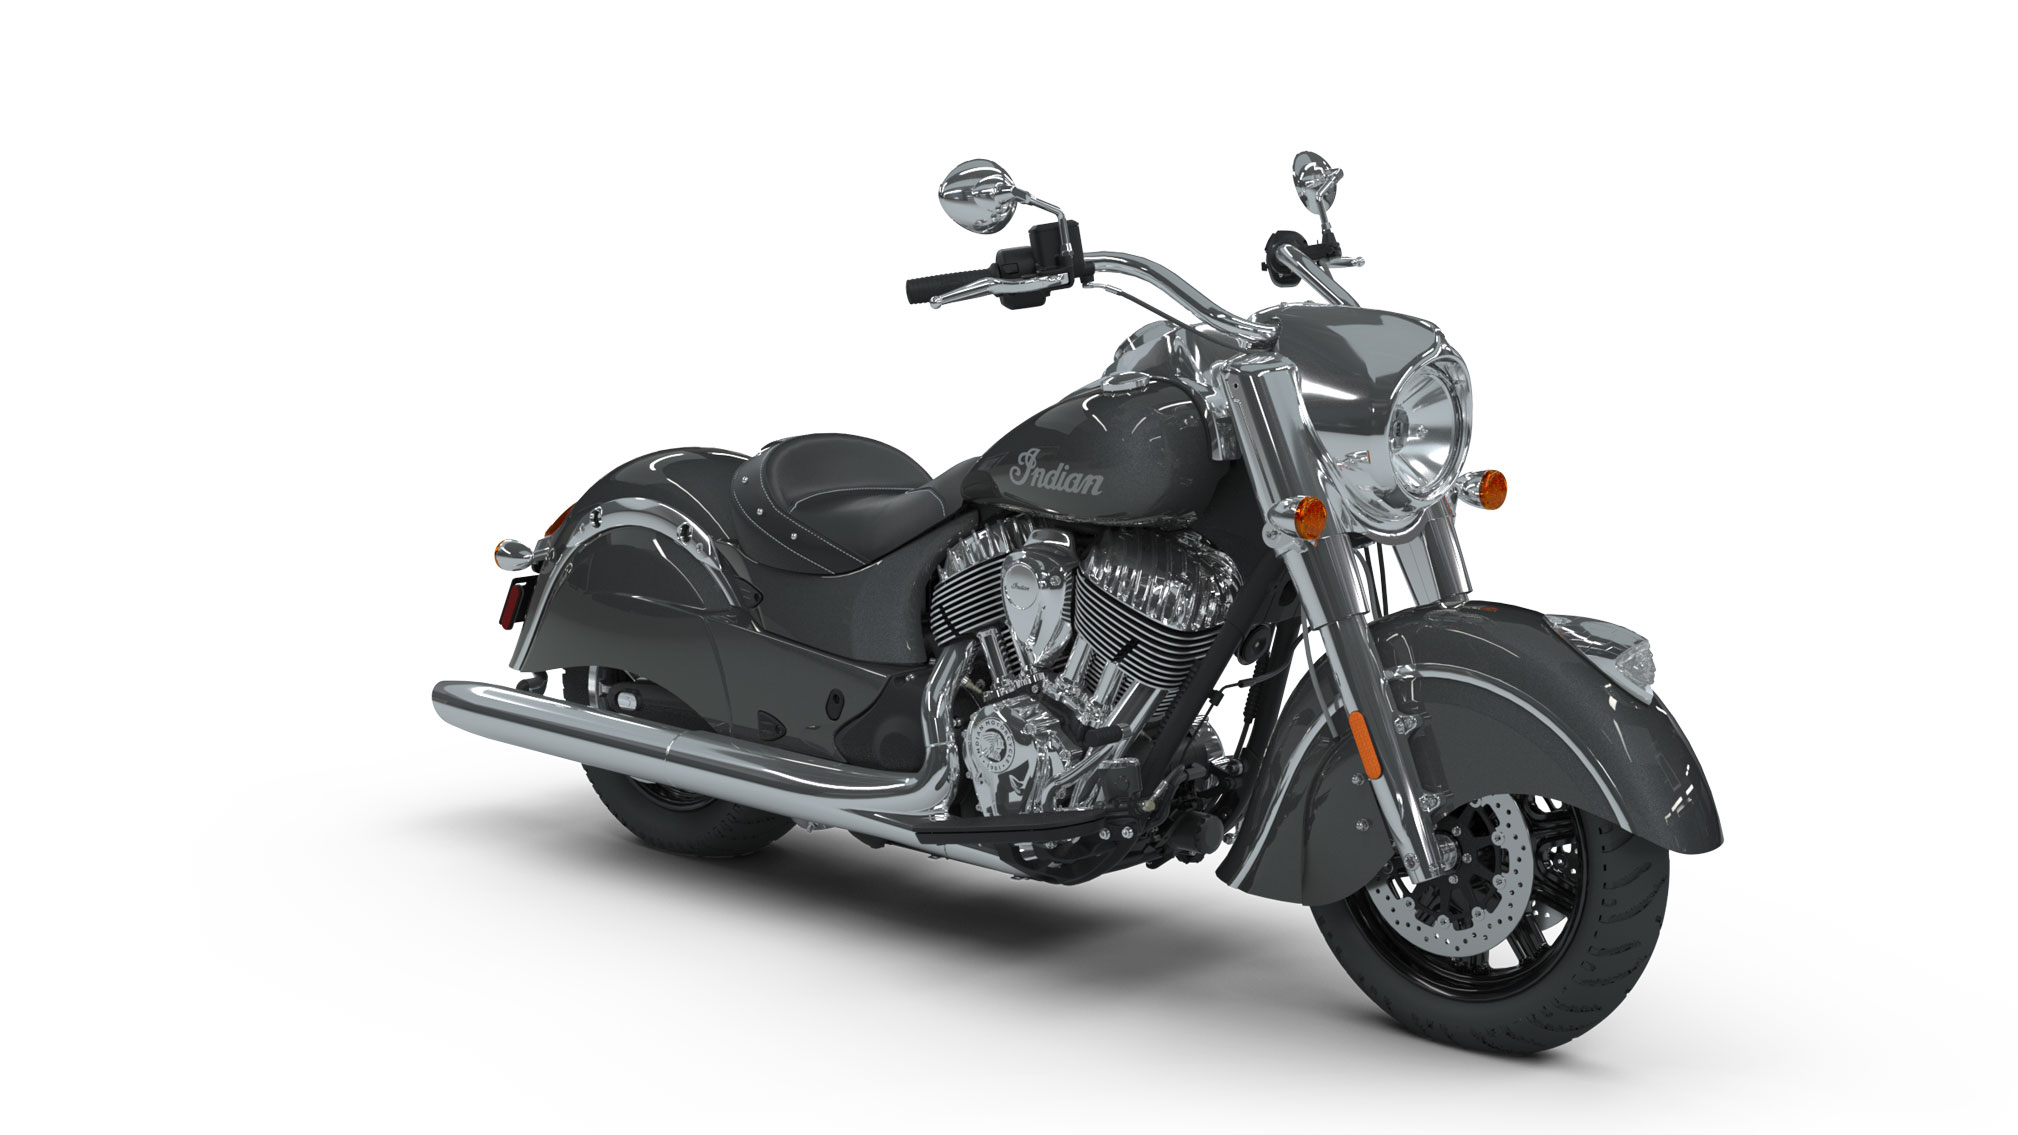 2018 Indian Chief Review Totalmotorcycle